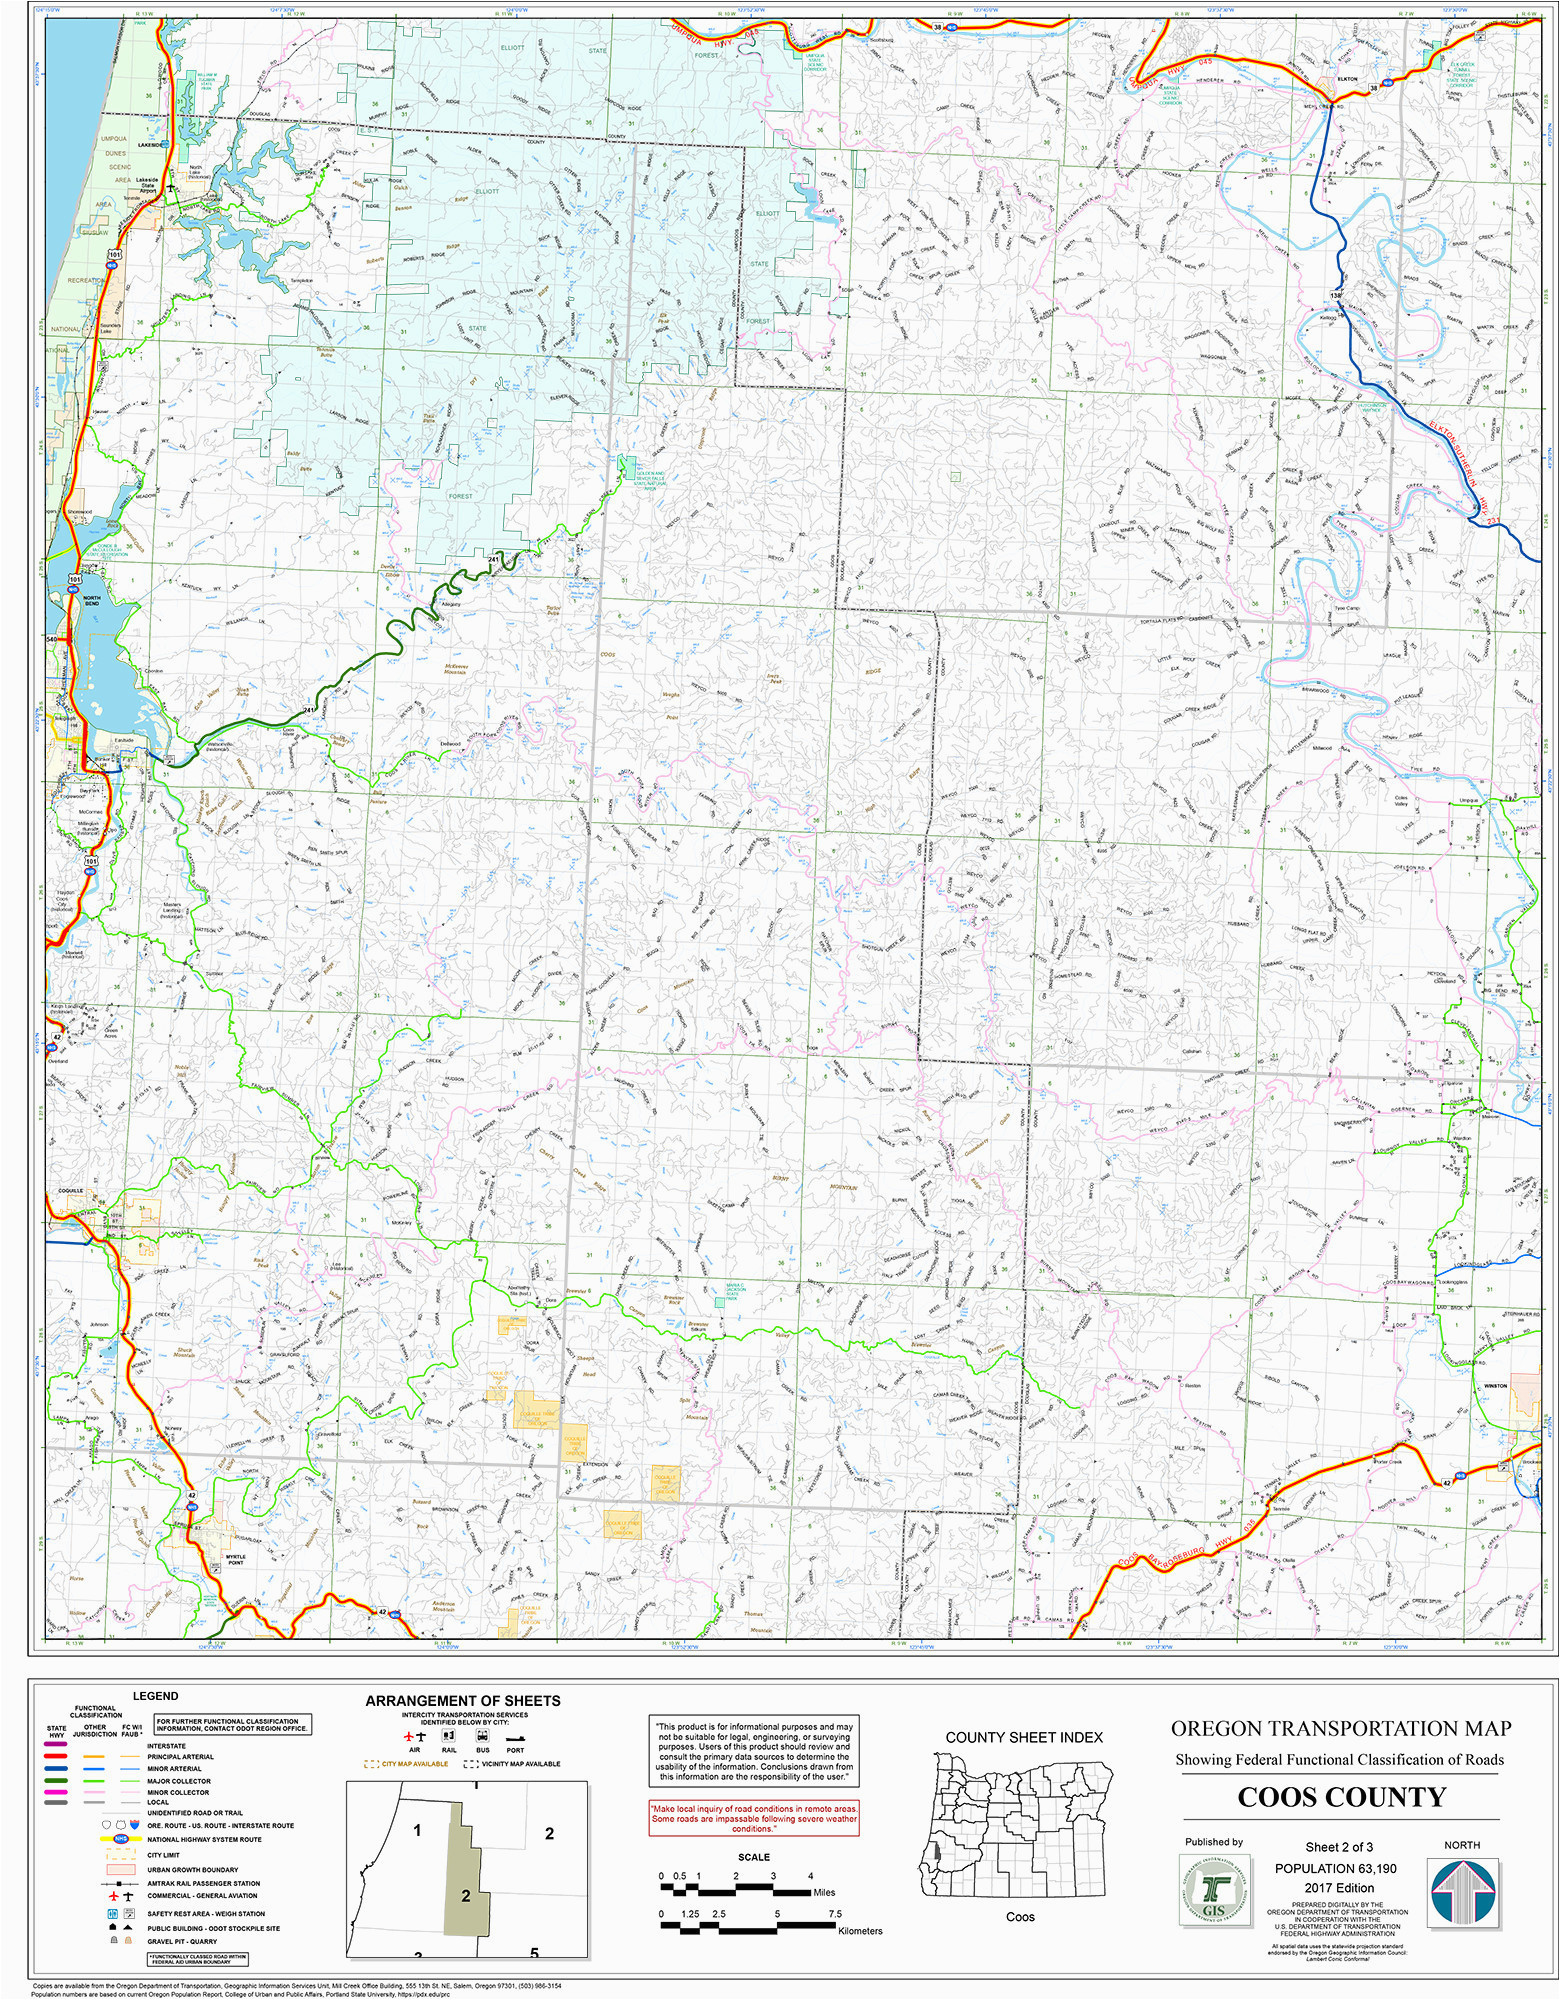 Map Of Alabama Lakes Google Maps Alabama Elegant U S Route 43 Maps  Route Map on indiana road map, honesdale pa map, pallet town map, kent state ohio map, mt. silver map, power plant map, milan tn map, saffron city map,